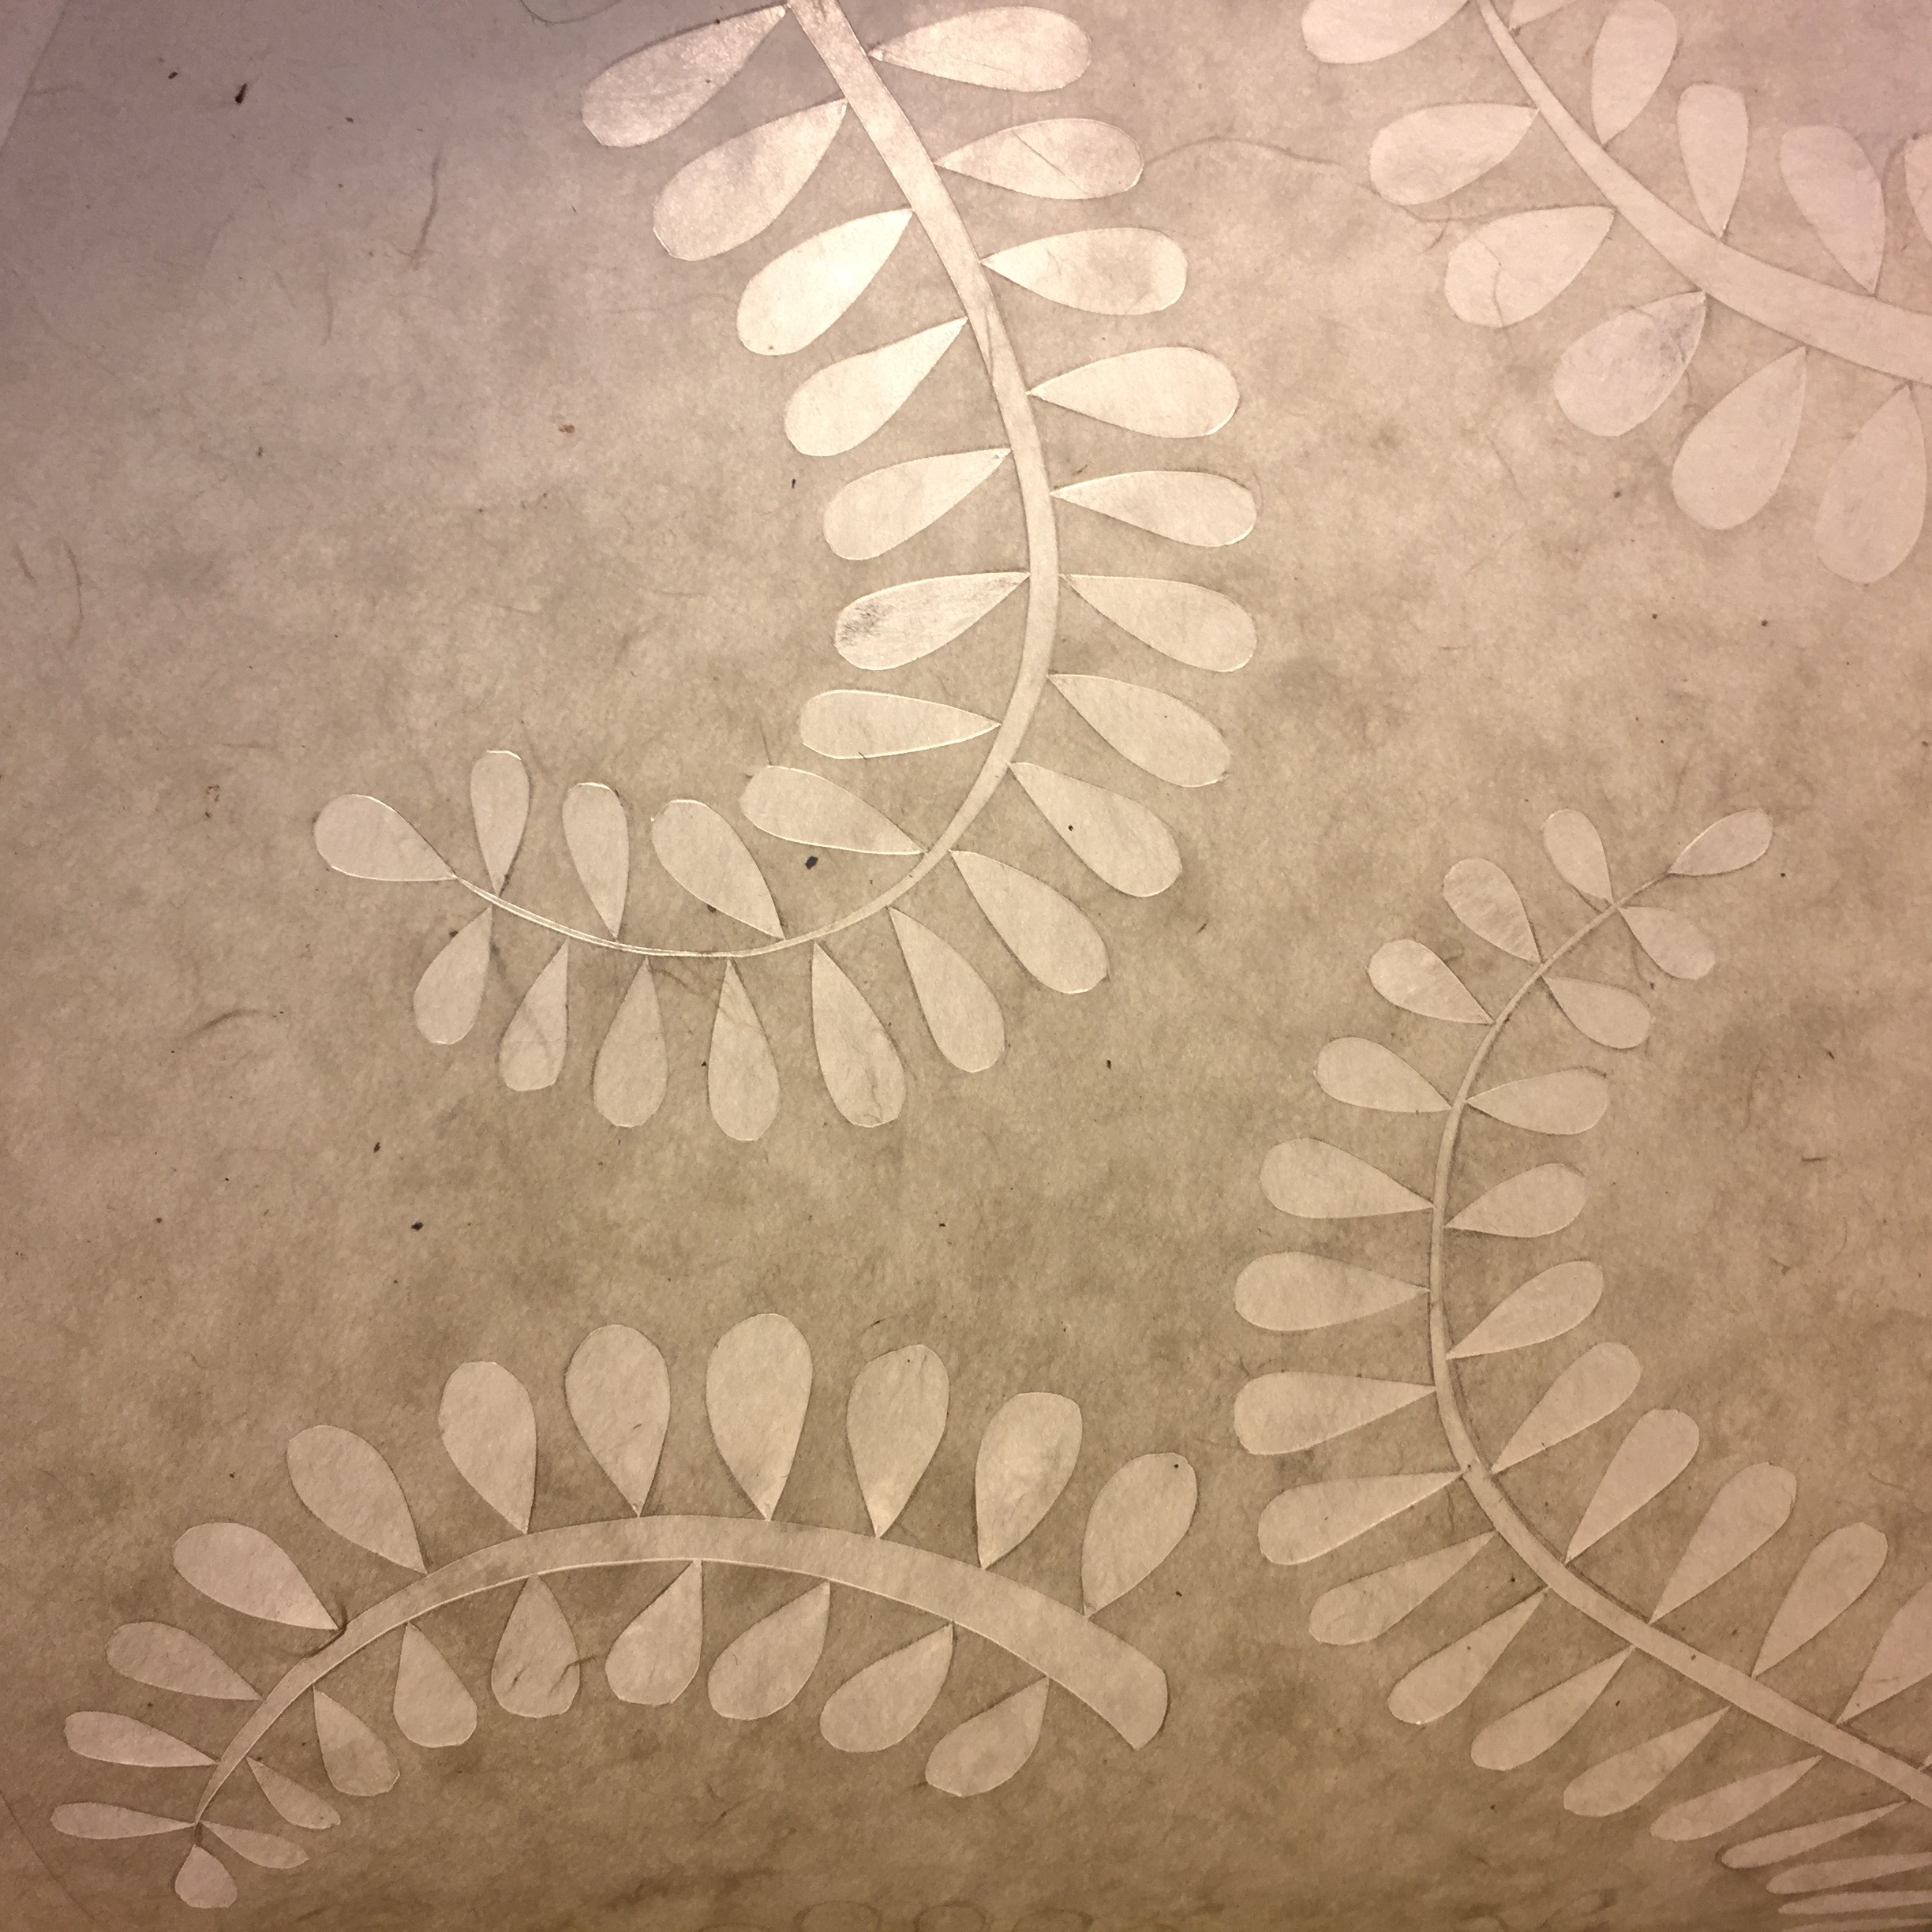 paper-cut leaves